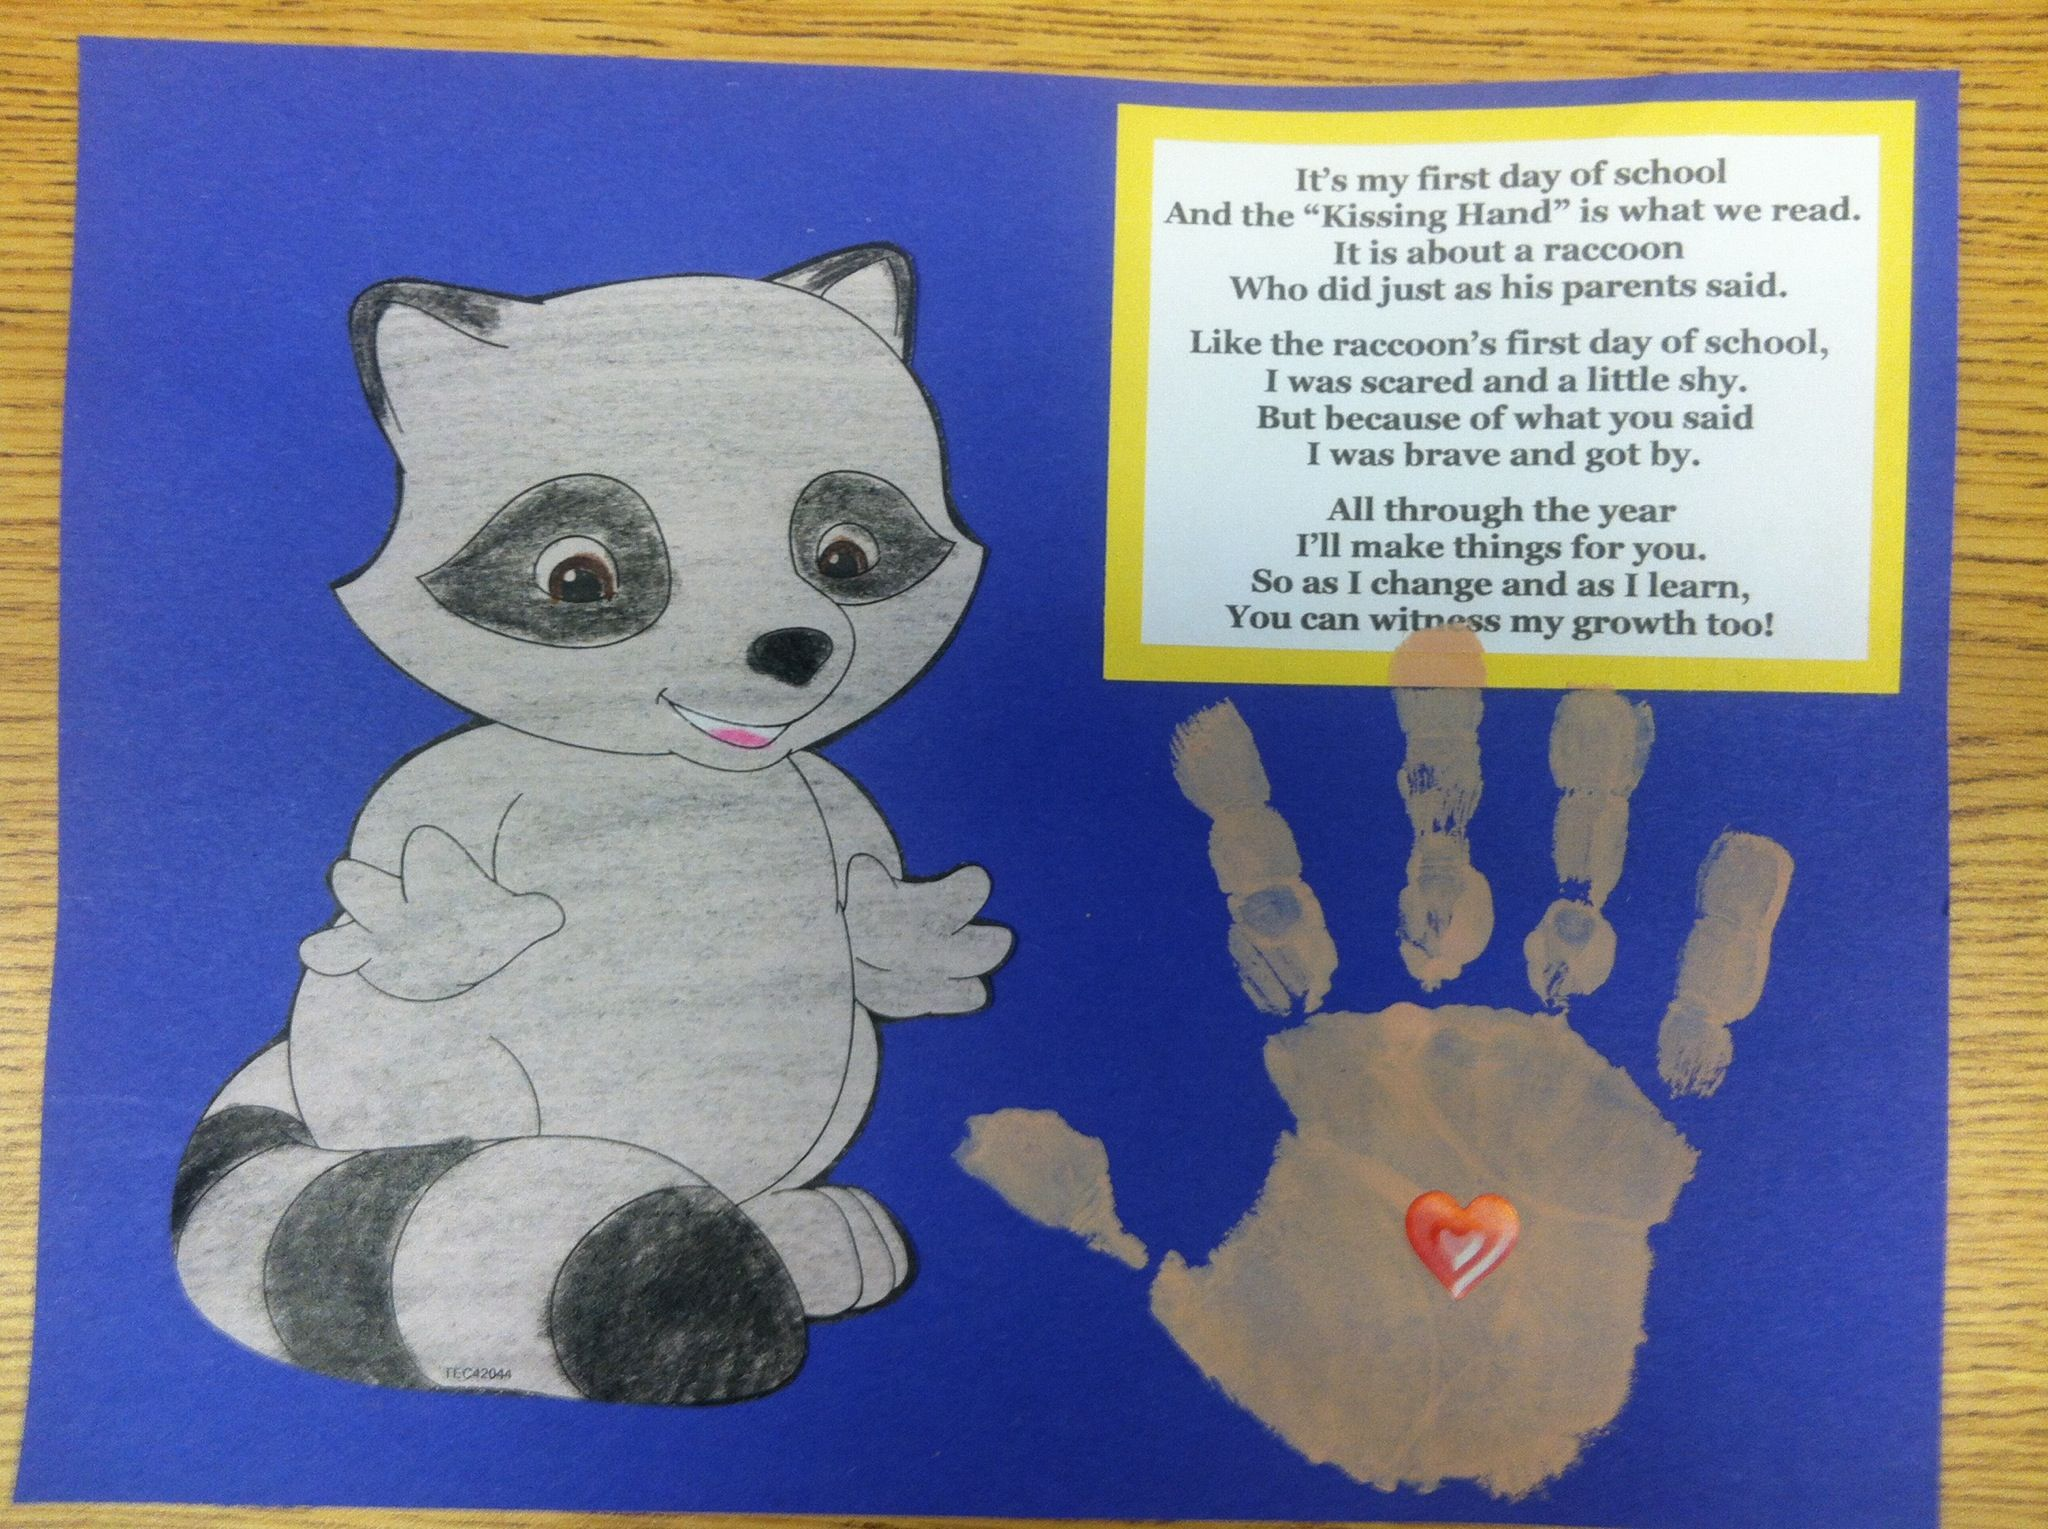 Raccoon Chester The Kissing Hand Arts Crafts Project I Used